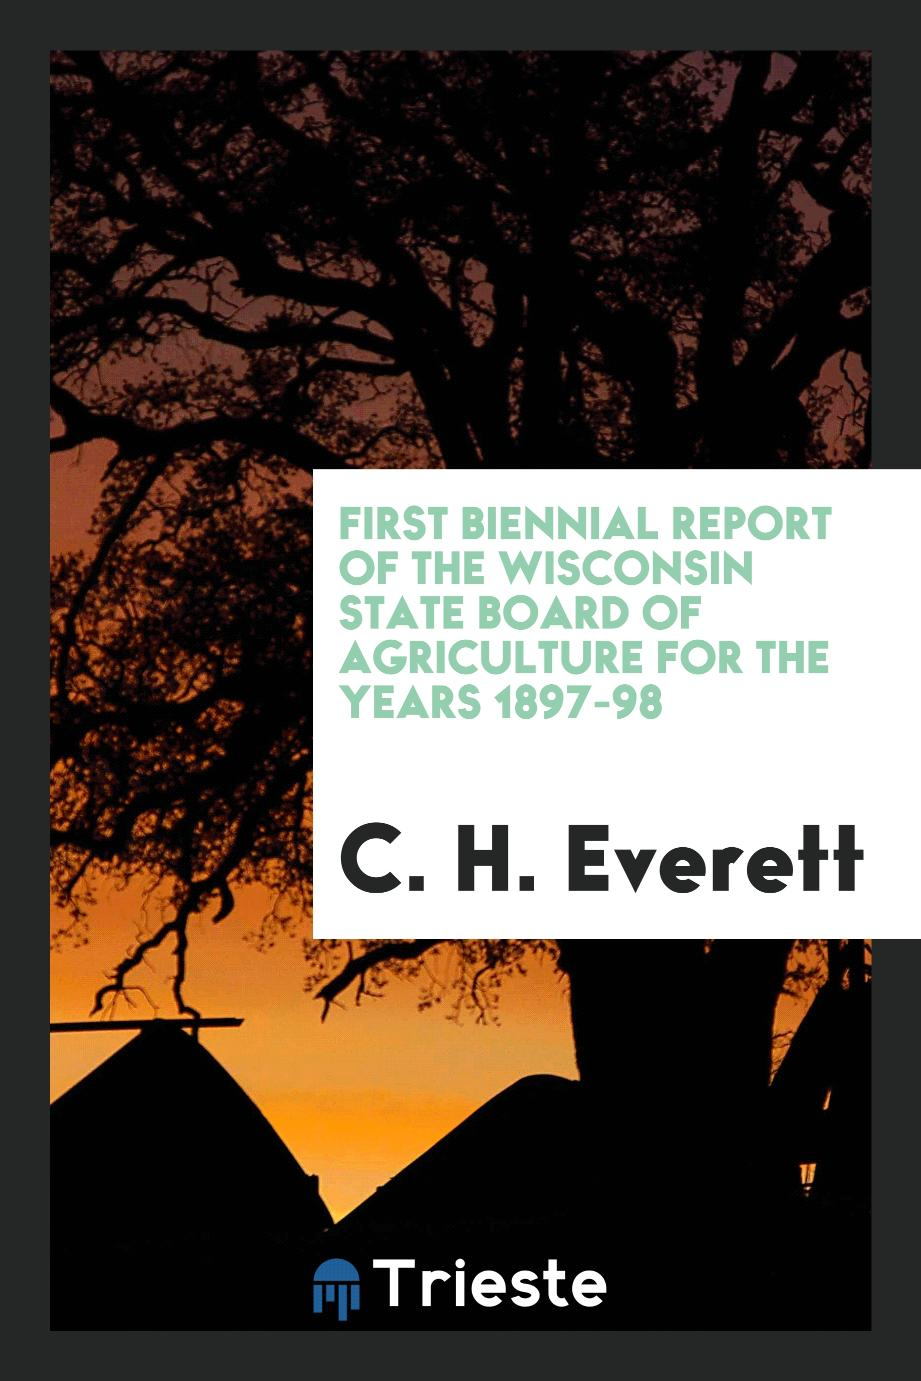 First Biennial Report of the Wisconsin State Board of Agriculture for the years 1897-98